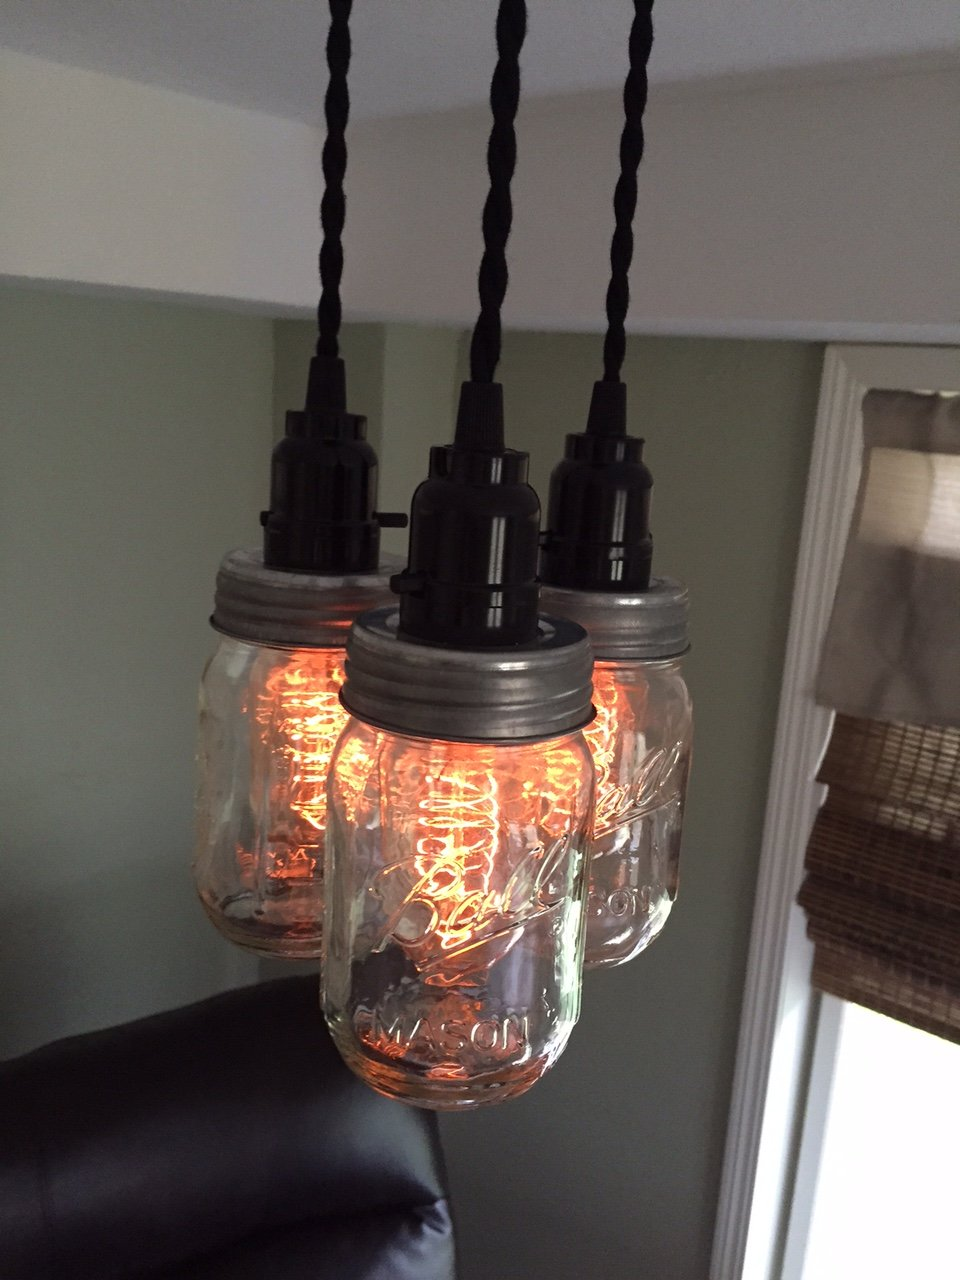 Three ball jar chandelier light jar pendant cluster 3 ball jar three ball jar chandelier light jar pendant cluster 3 ball jar cluster built in the usa by industrial rewind mason jar lights amazon arubaitofo Choice Image